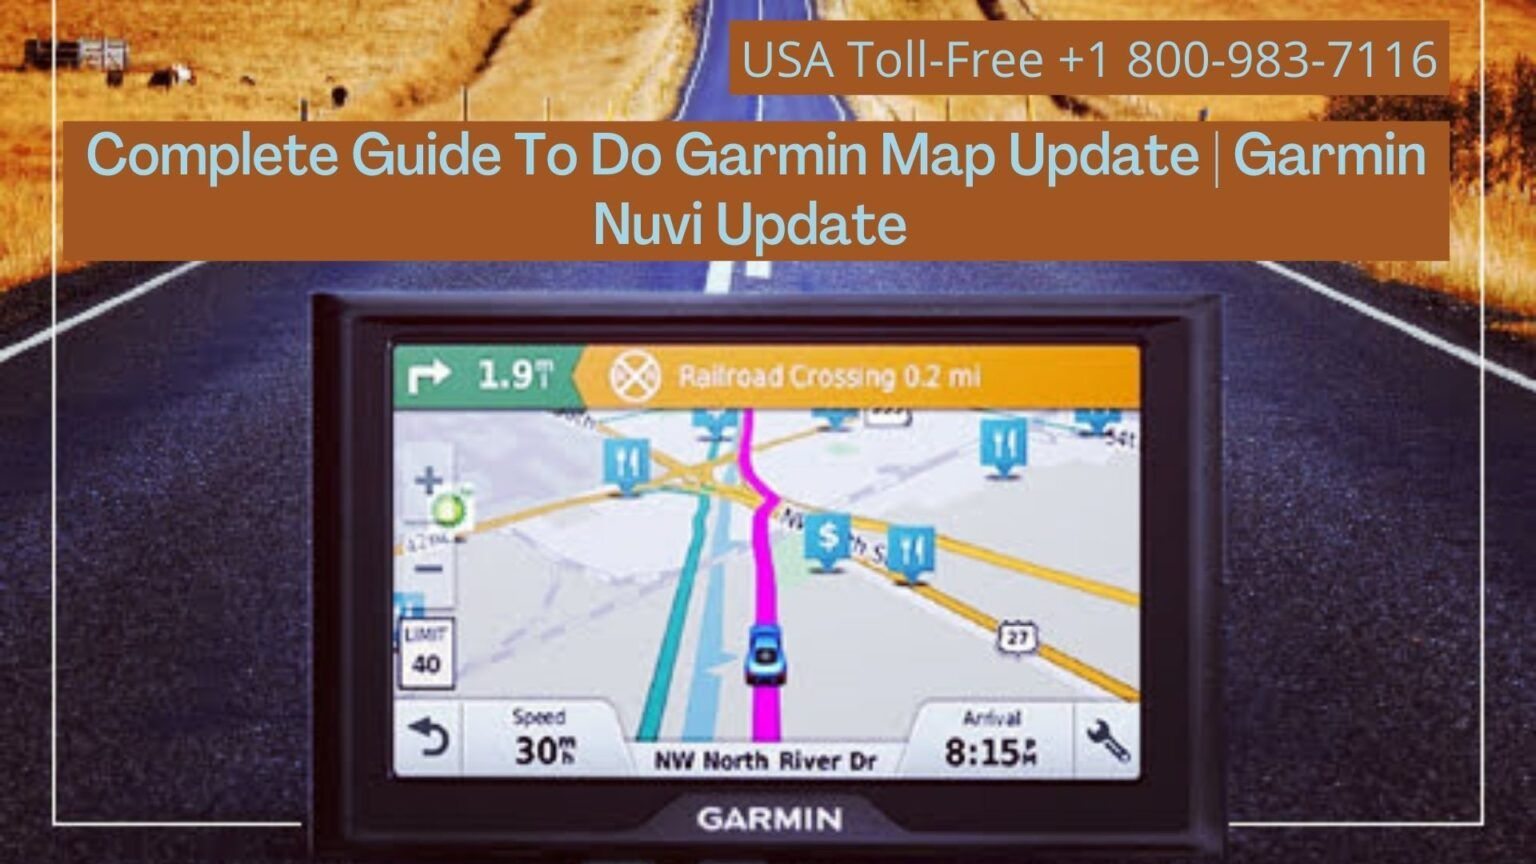 How To Update Garmin Gps Without Computer